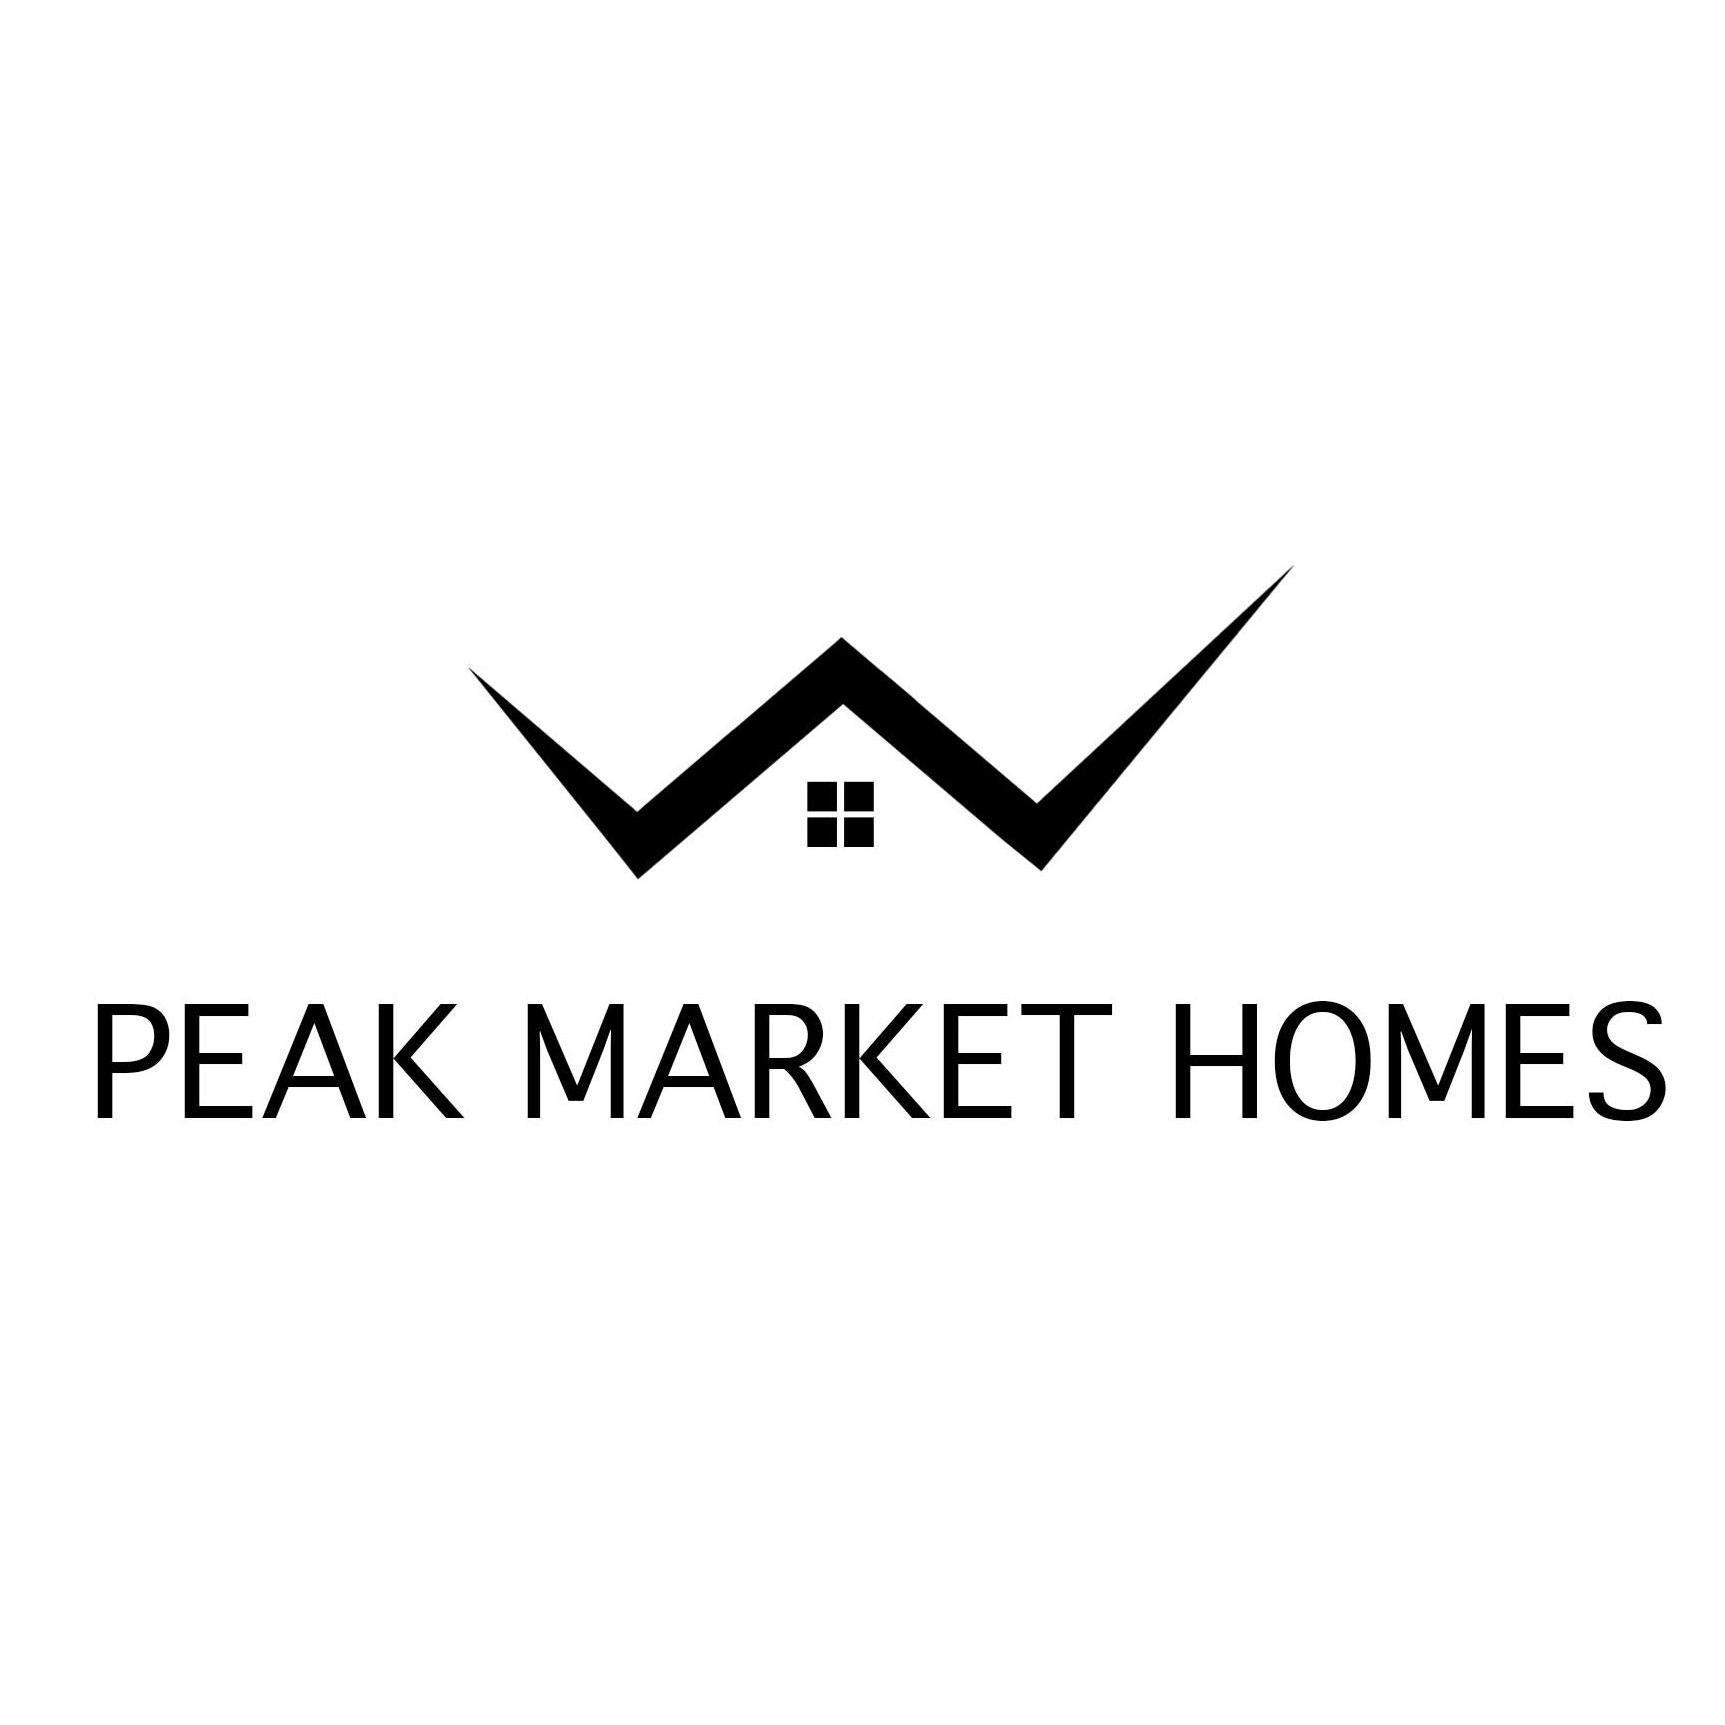 Peak Market Homes, LLC